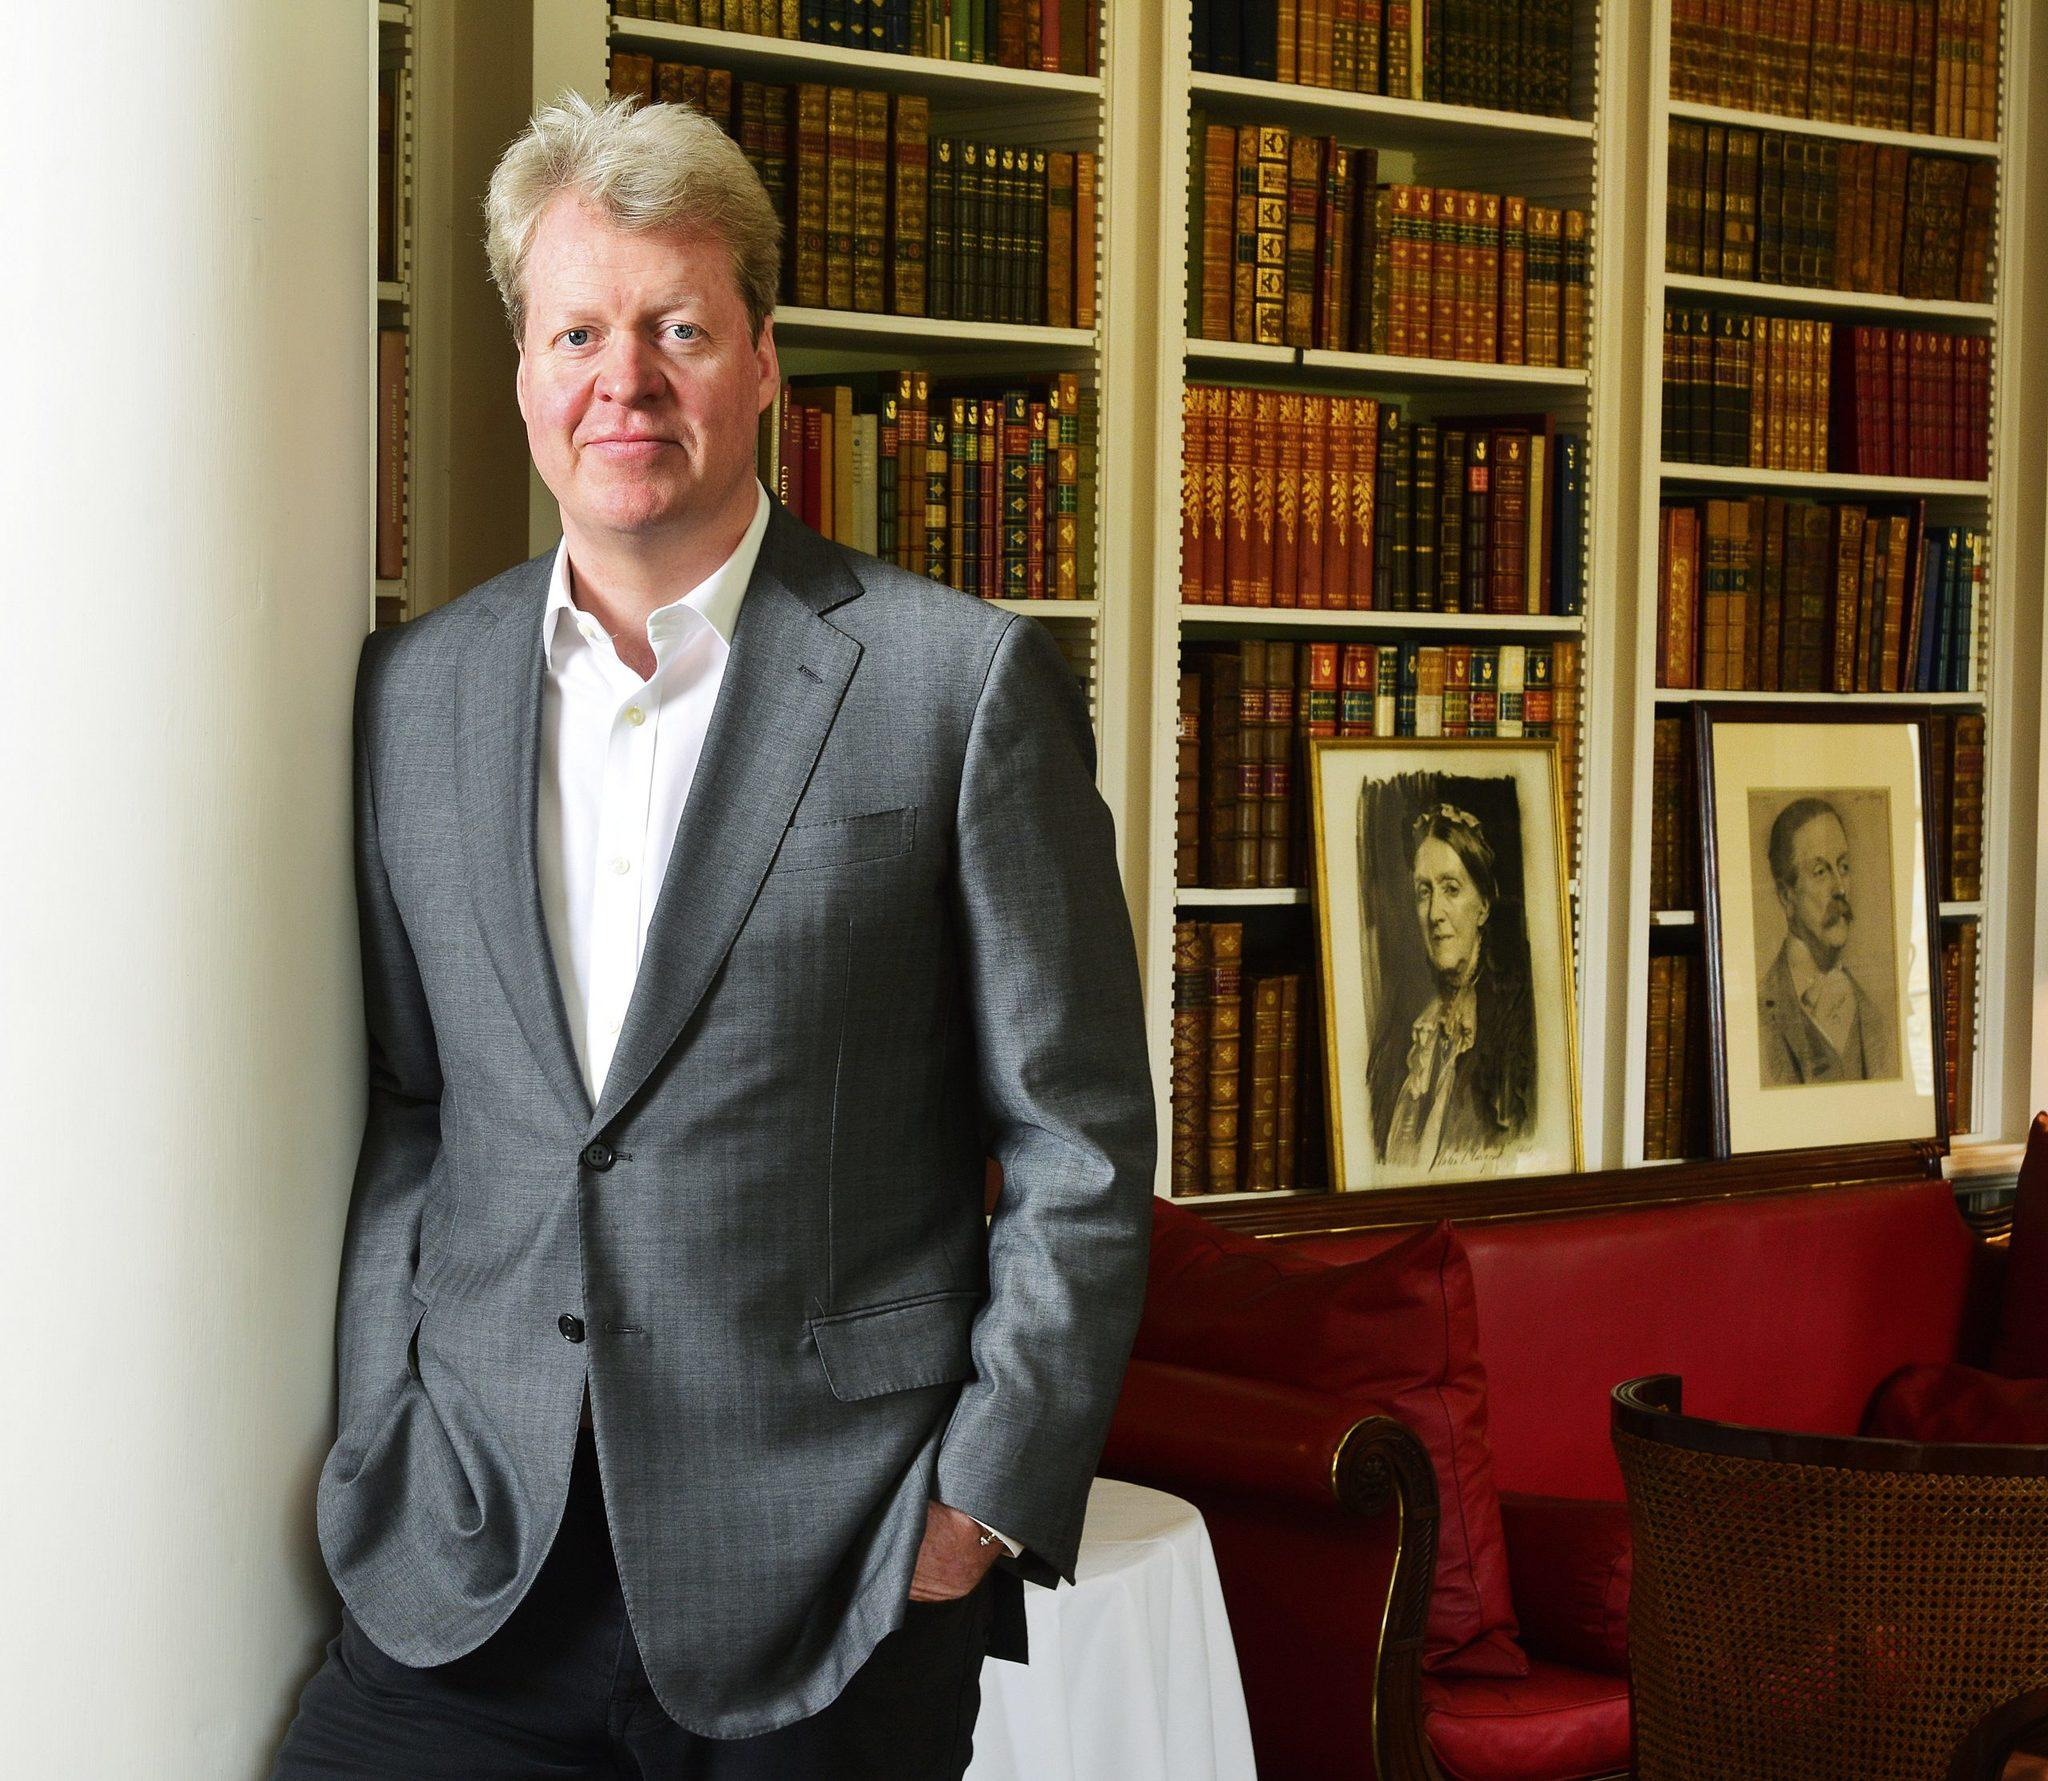 Charles Spencer, 9th Earl Spencer, in the library at Althorp, Northamptonshire, 15th May, 2014. Photo by John Robertson, ©2014.